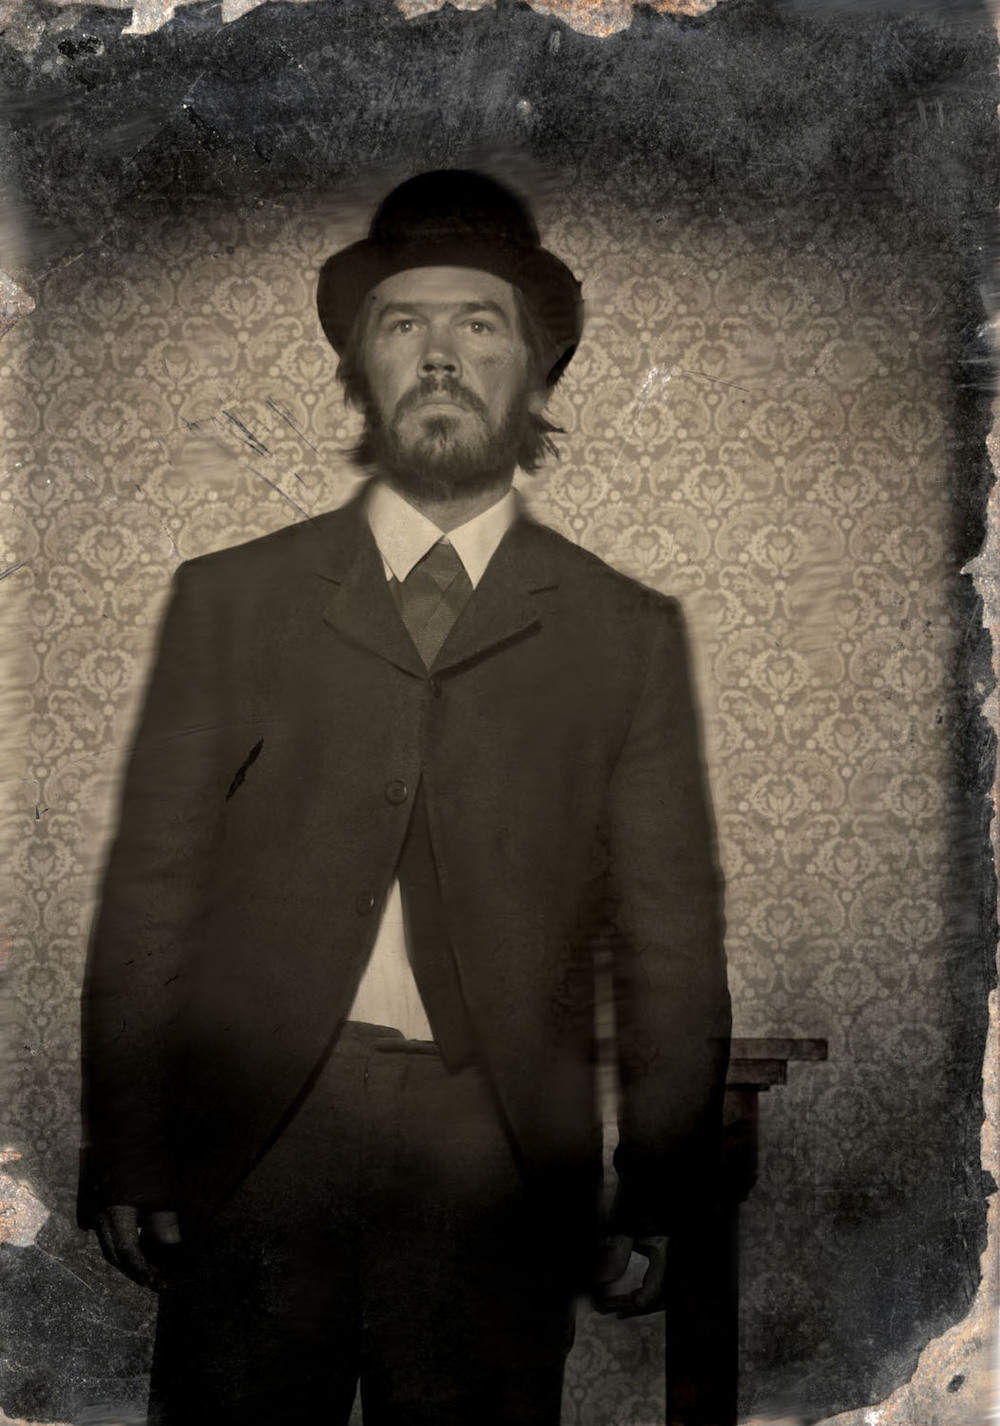 chaney tintype3a1.jpg